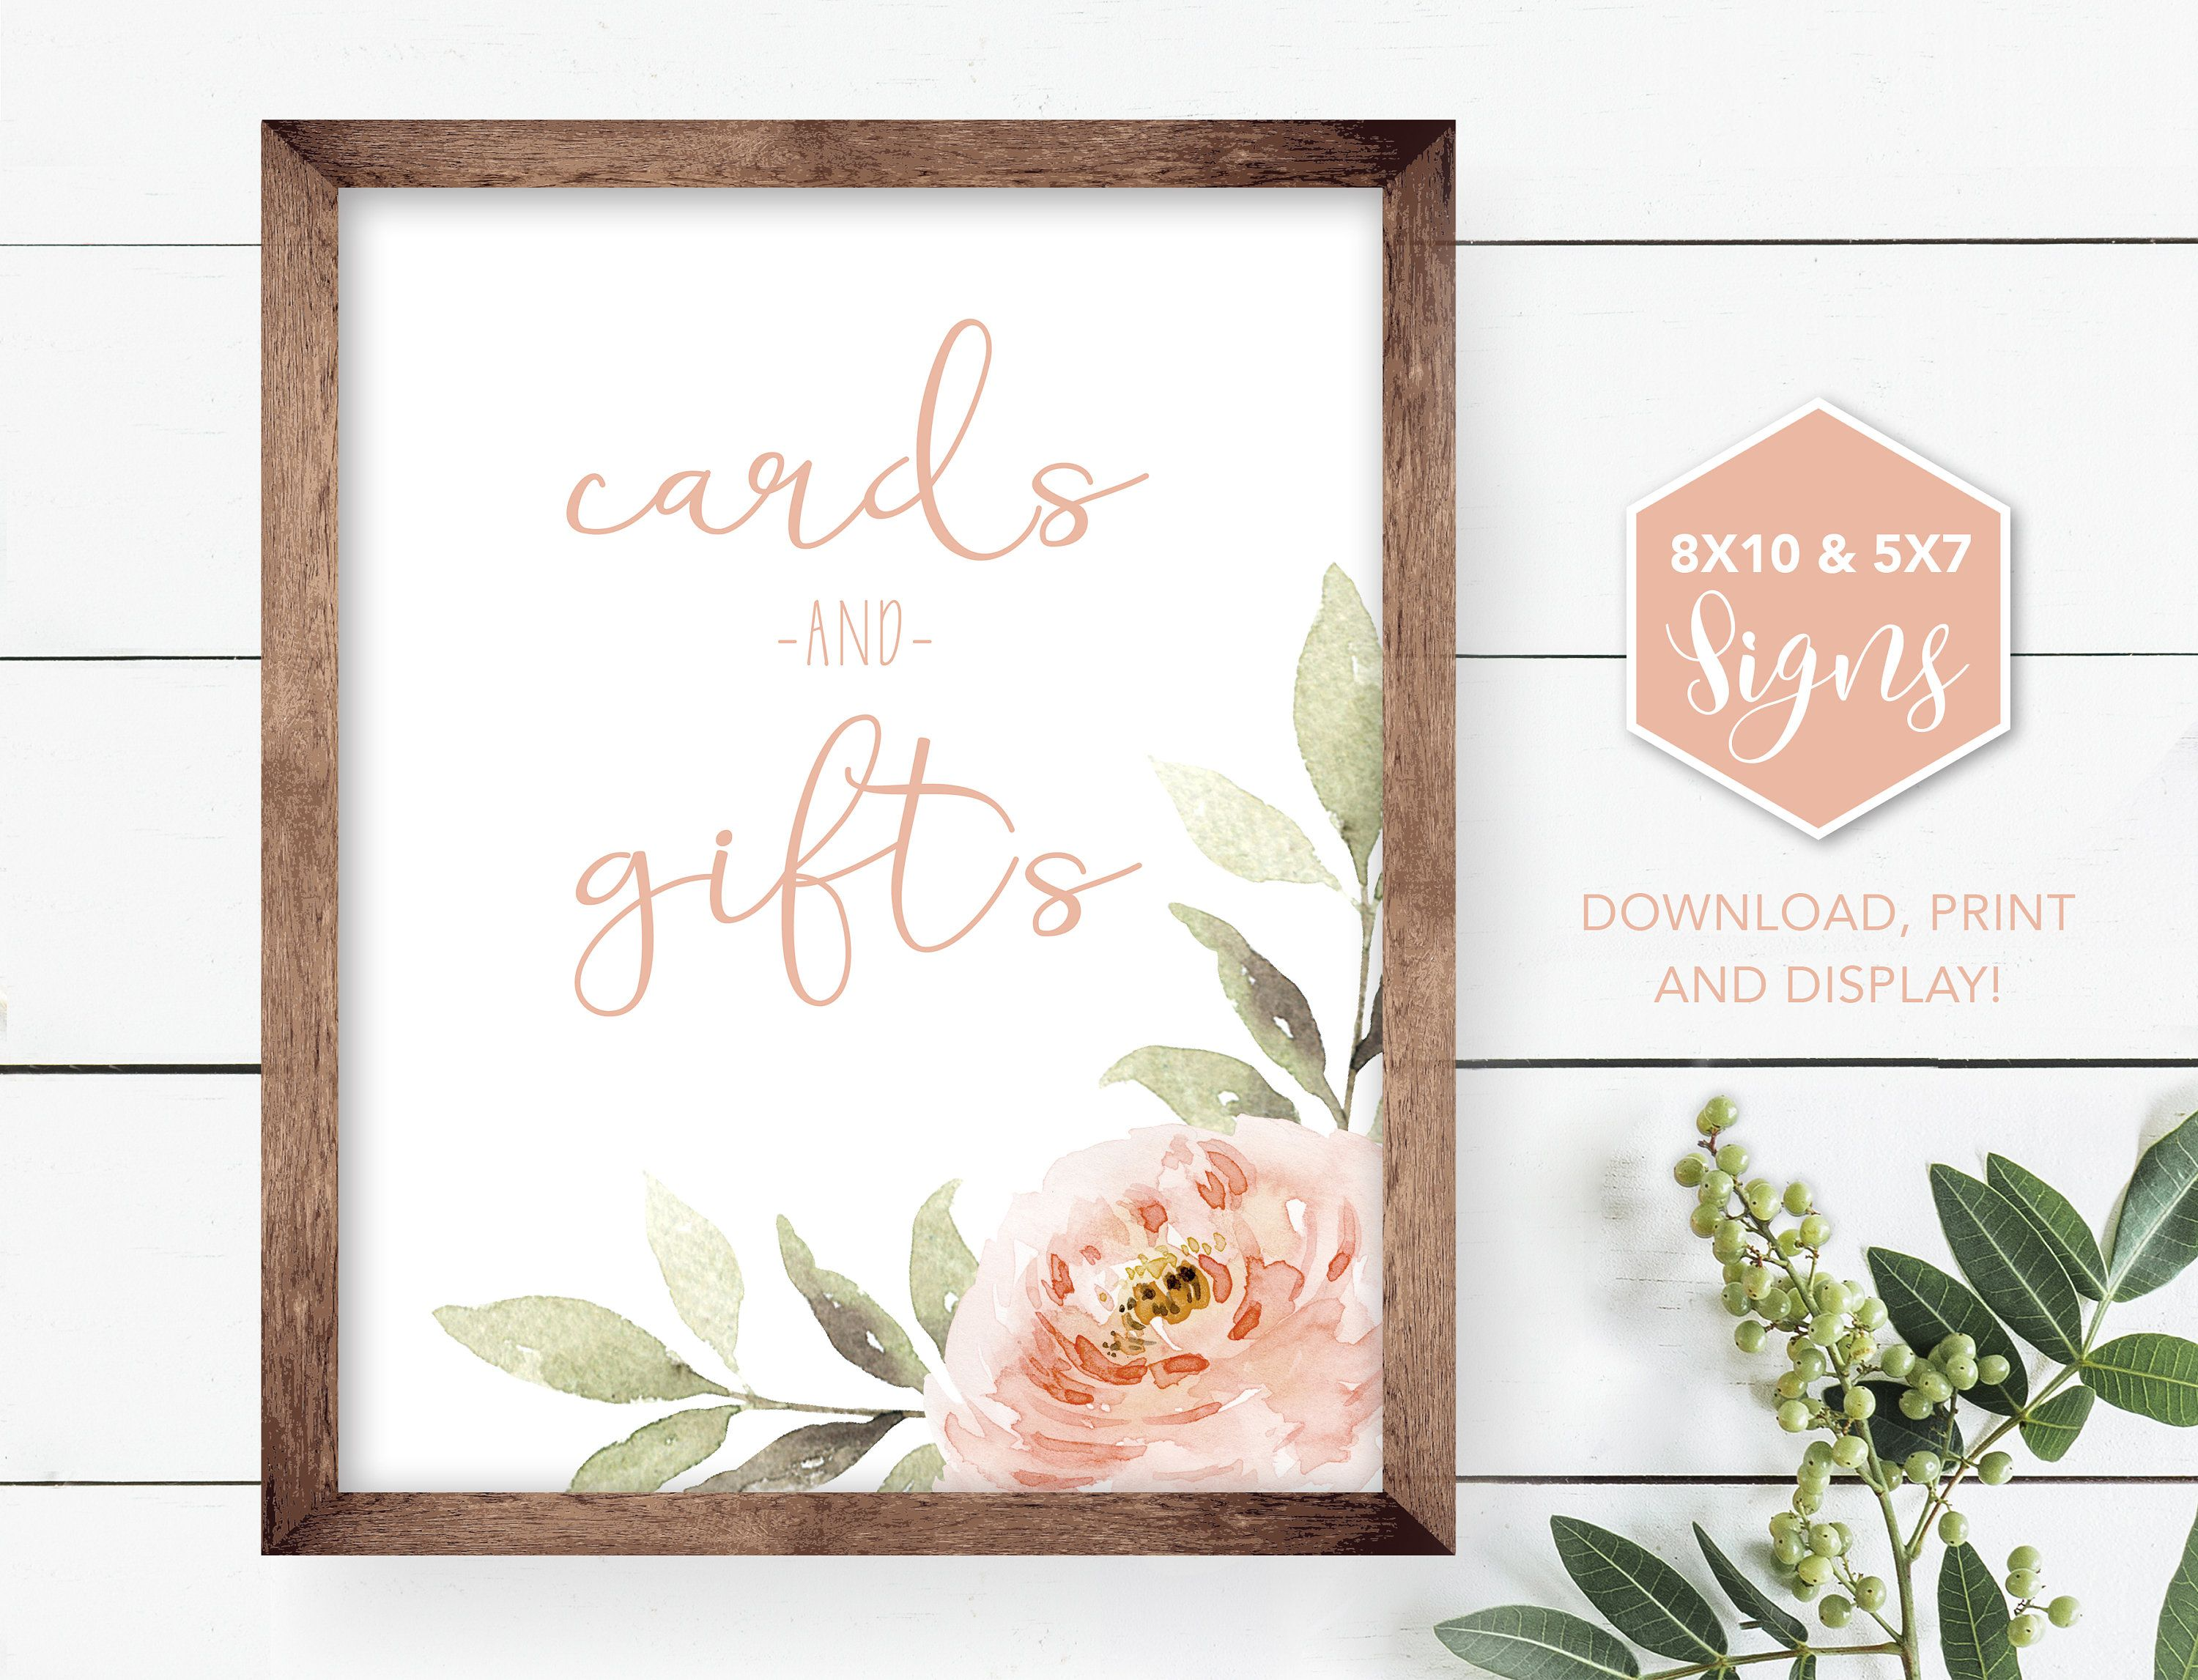 cd95c7f1c9b Floral Cards and Gifts Sign